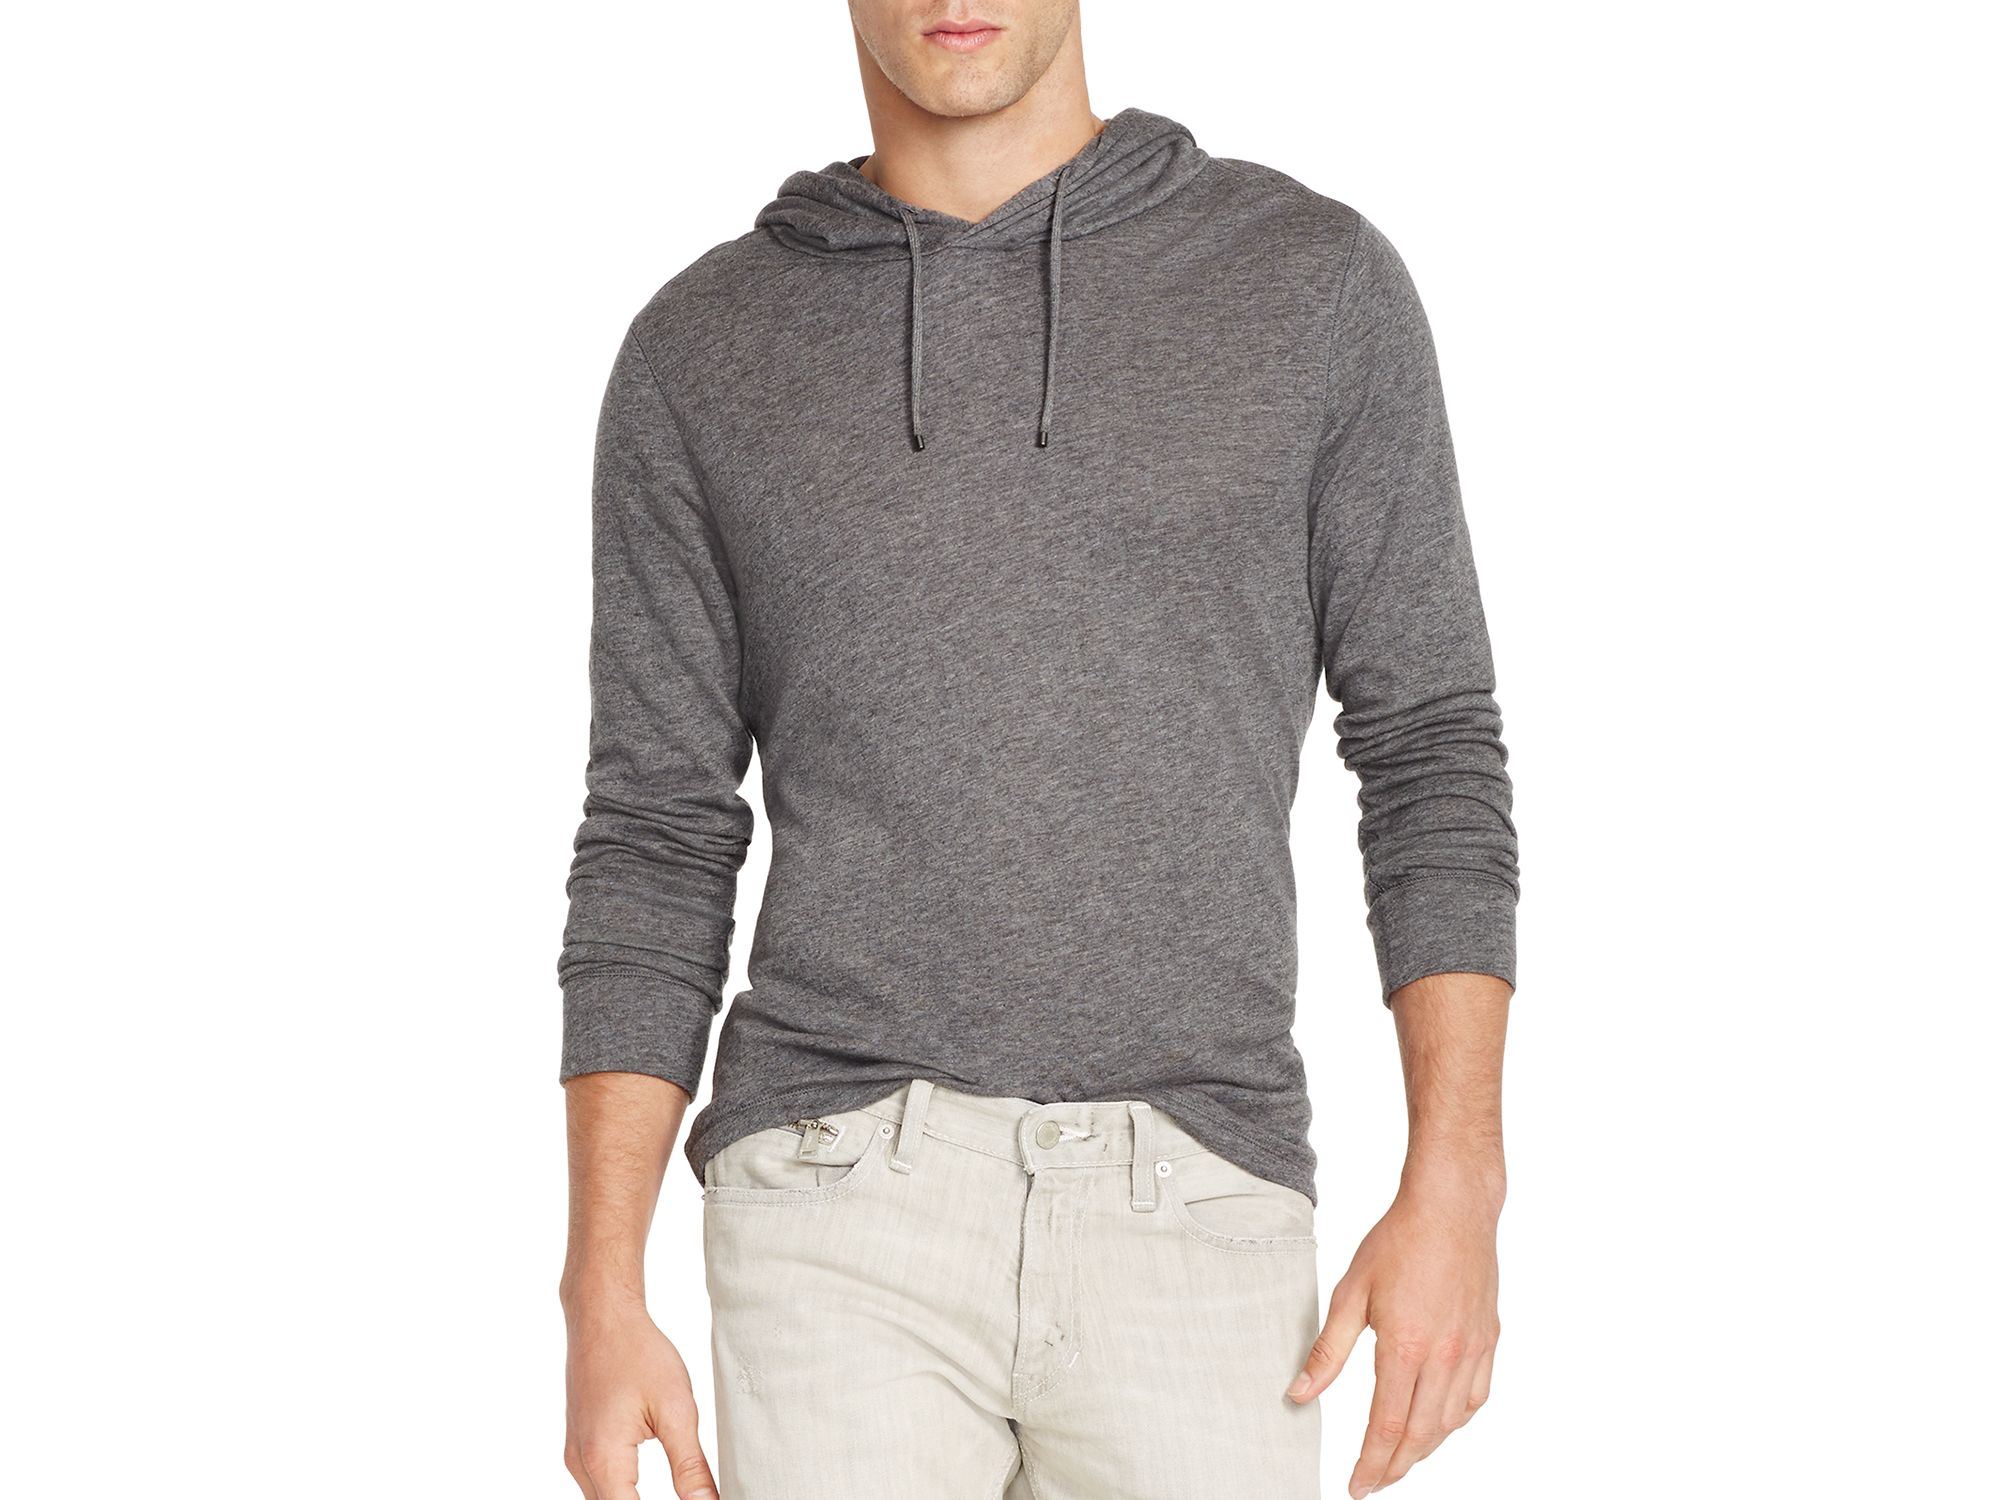 polo ralph lauren pima duofold hoodie in gray for men lyst. Black Bedroom Furniture Sets. Home Design Ideas